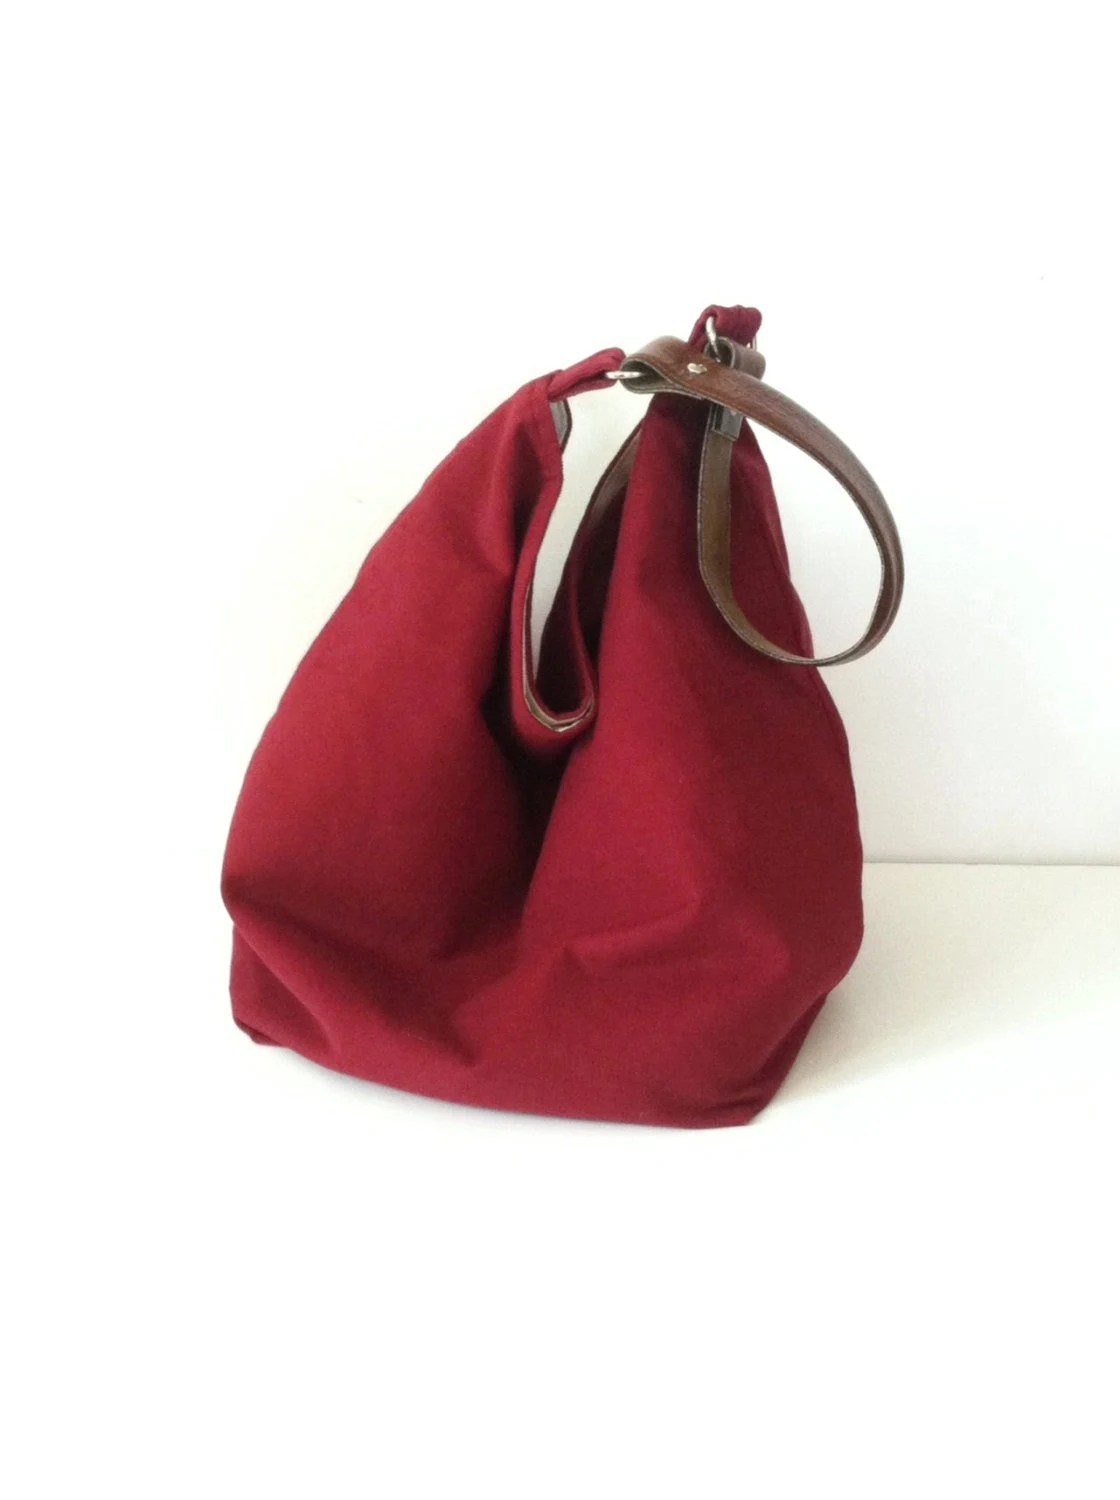 Cranberry Corduroy Hobo Bag - Slouchy Box Bag - Fall Tote - Bucket Style Purse - JuneberryStitches